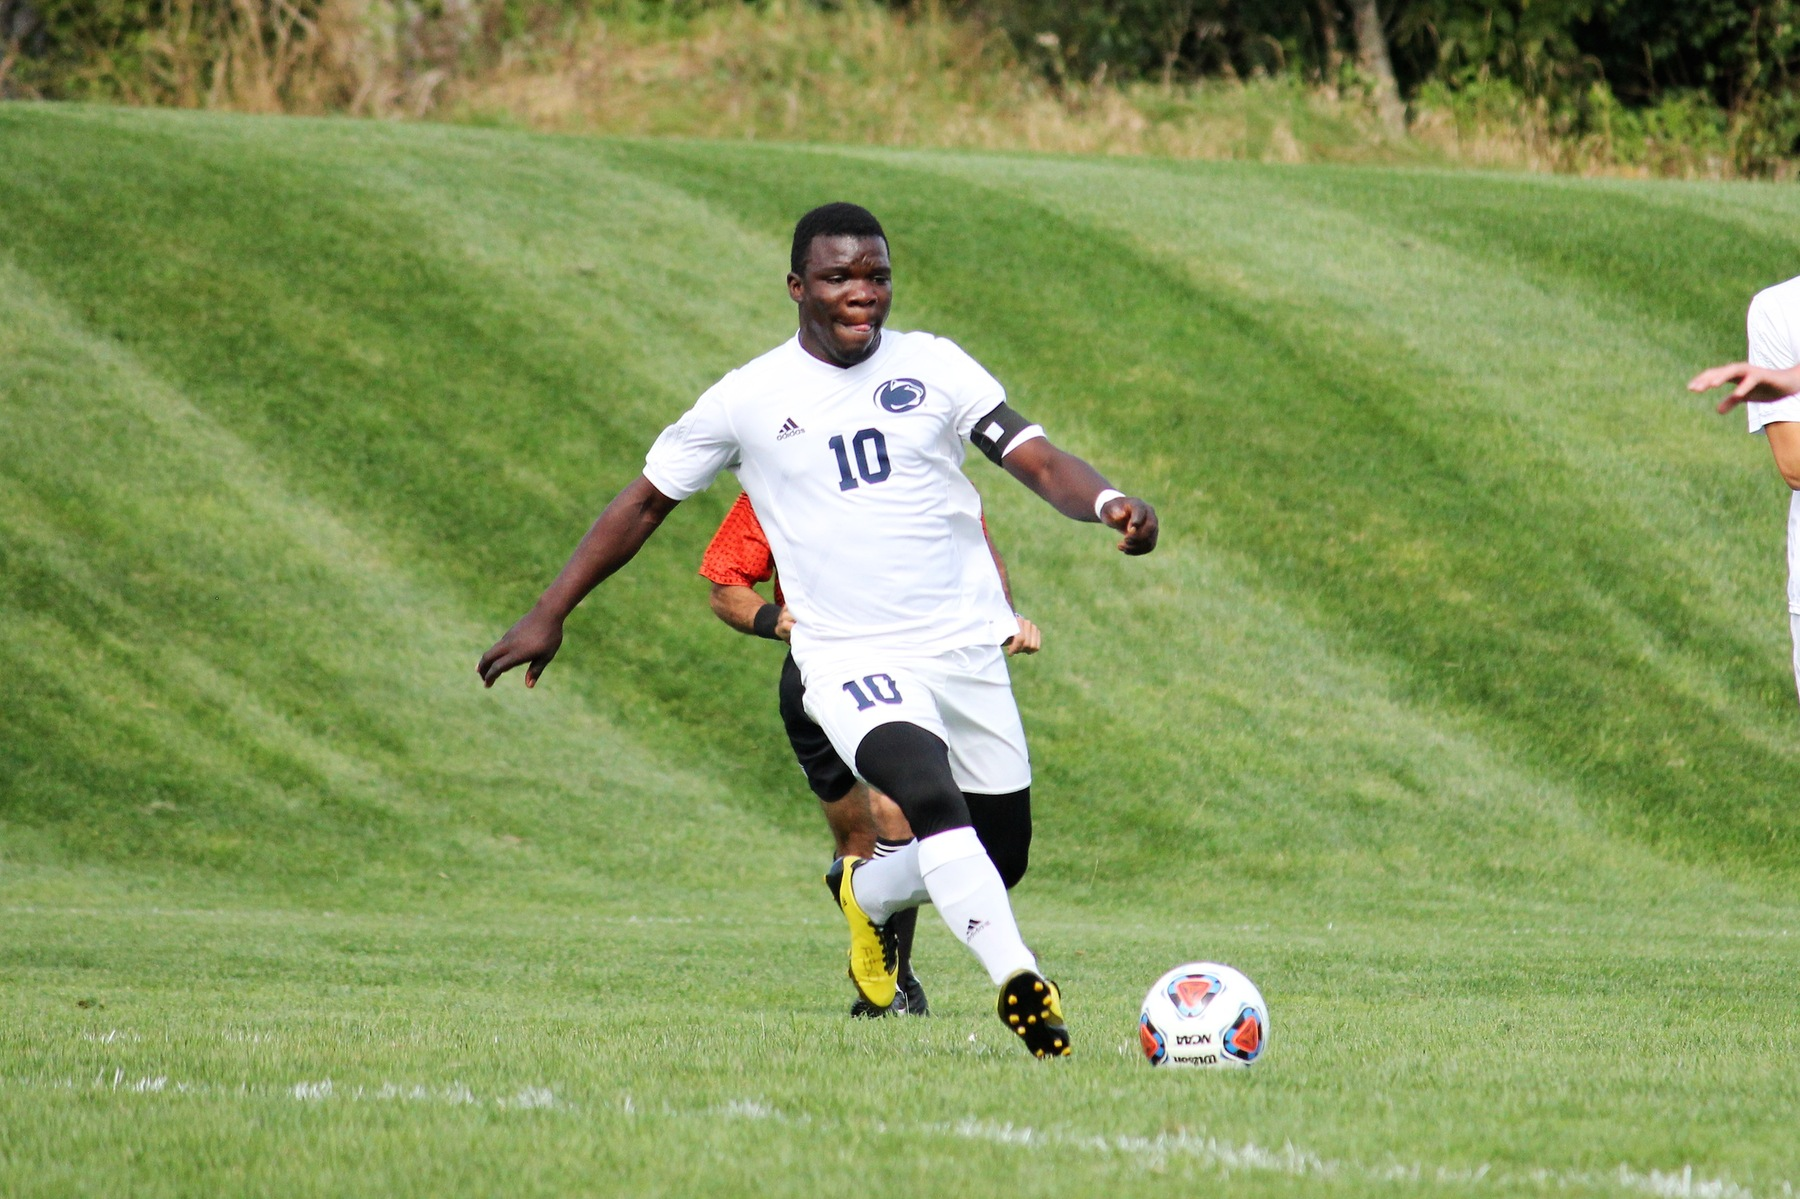 Men's Soccer Battles Penn State York to 3-3 Tie